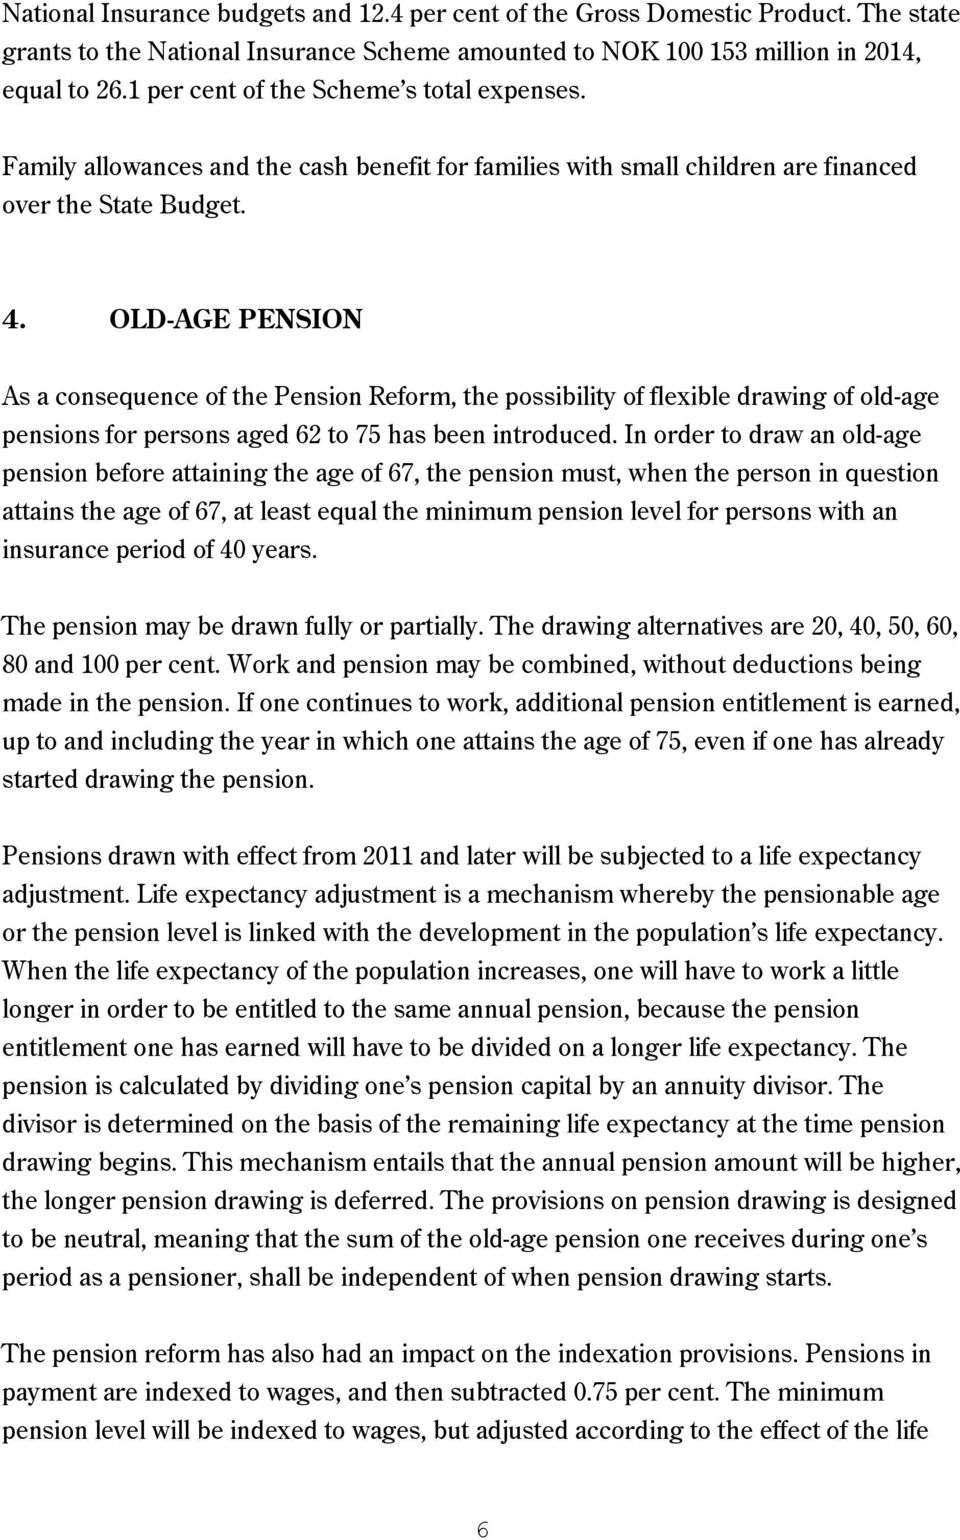 OLD-AGE PENSION As a consequence of the Pension Reform, the possibility of flexible drawing of old-age pensions for persons aged 62 to 75 has been introduced.